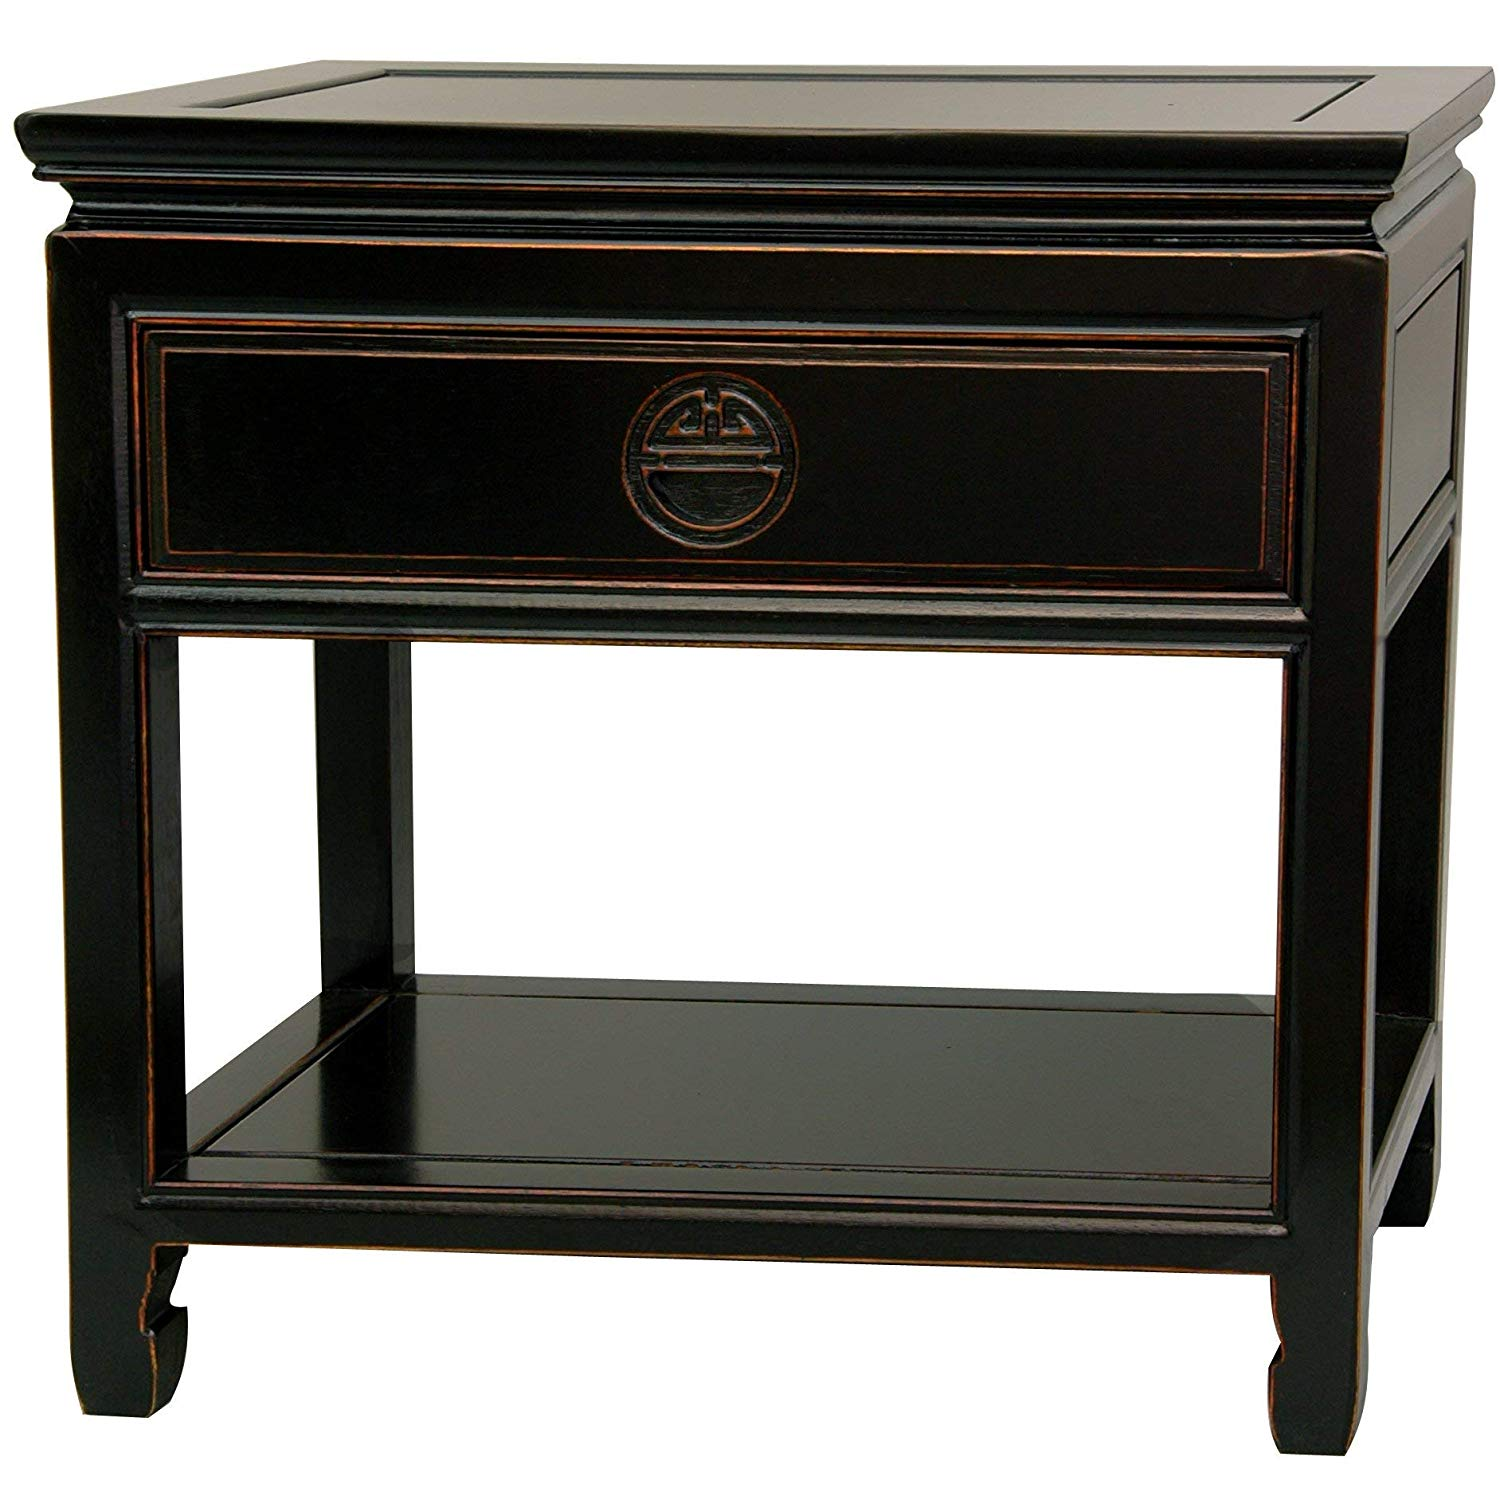 oriental furniture rosewood bedside table antique black end tables kitchen dining modern styling brown leather couch target shelf bookcase tall shaped side hampton house white